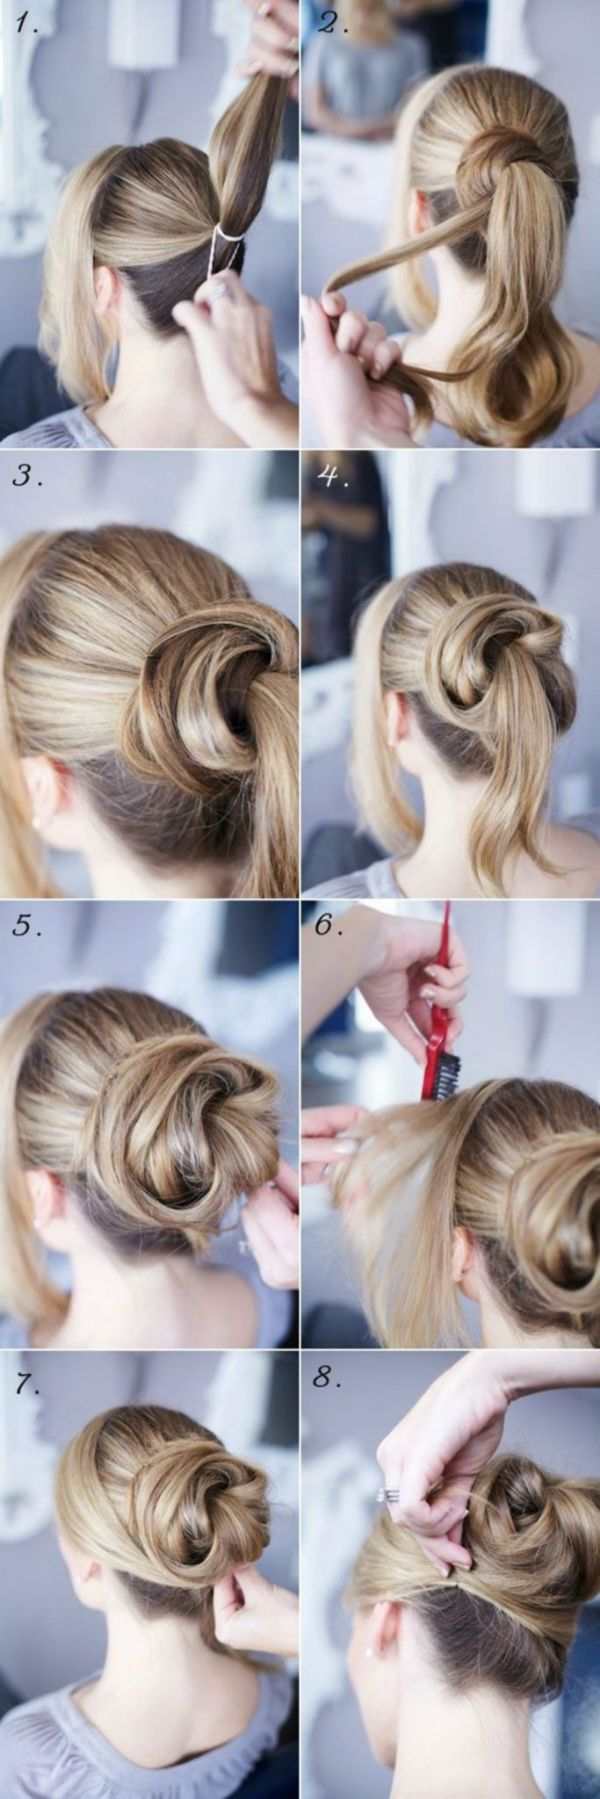 Office Hairstyles: Create A Twist Simple Hairstyles For A Strict Dress Code